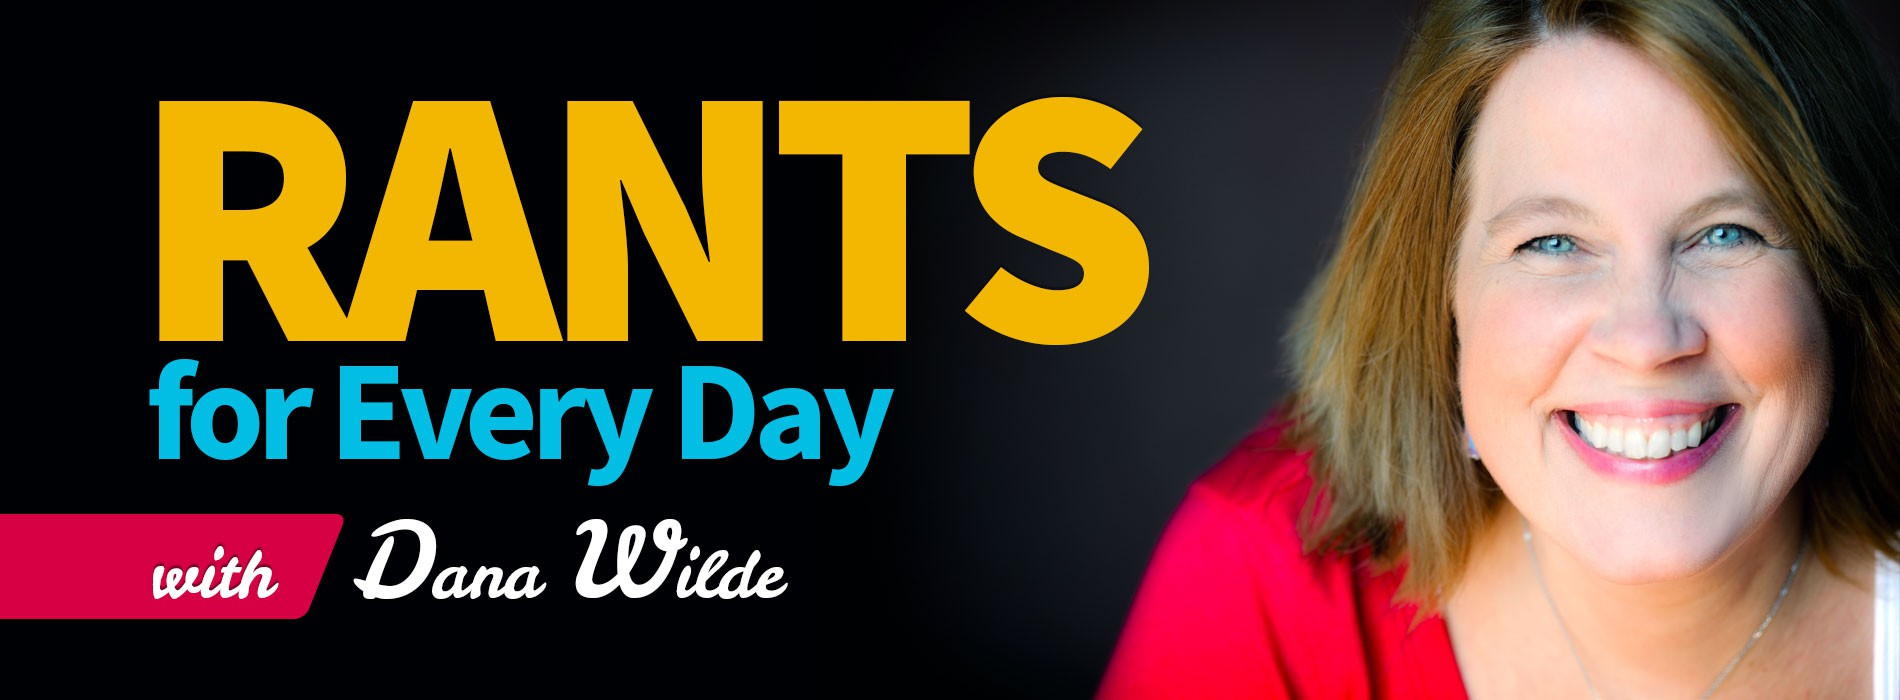 1900x700 Rants for Every Day with Dana Wilde